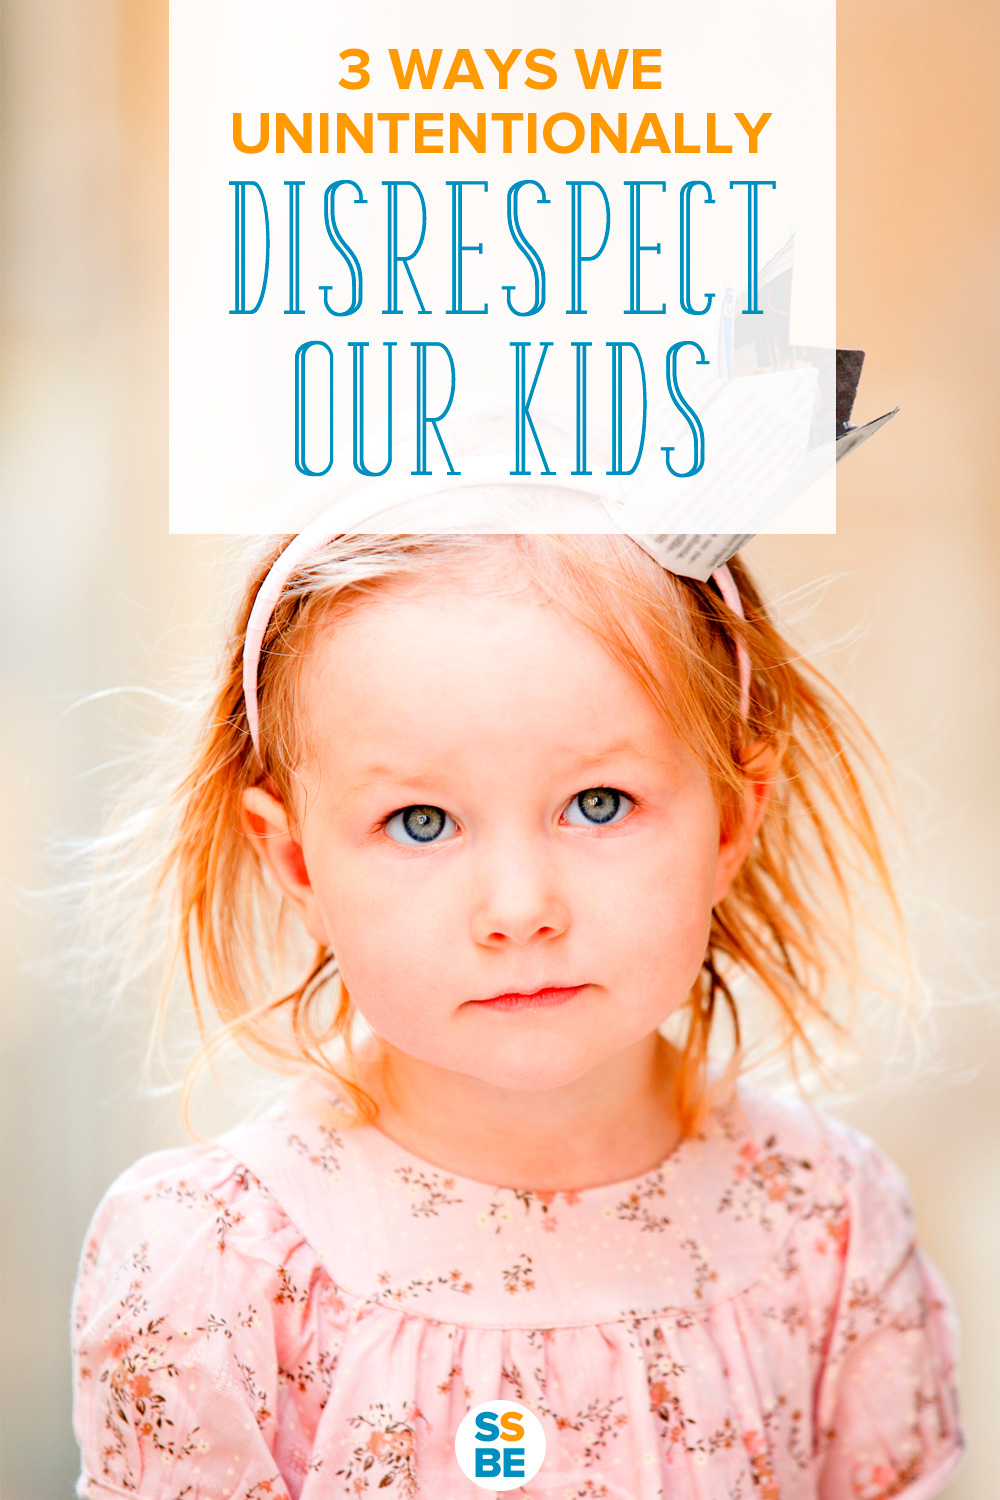 No parent would disrespect her child on purpose, but sometimes we do so without knowing. Check out these three ways we unintentionally disrespect kids — and what to do instead.